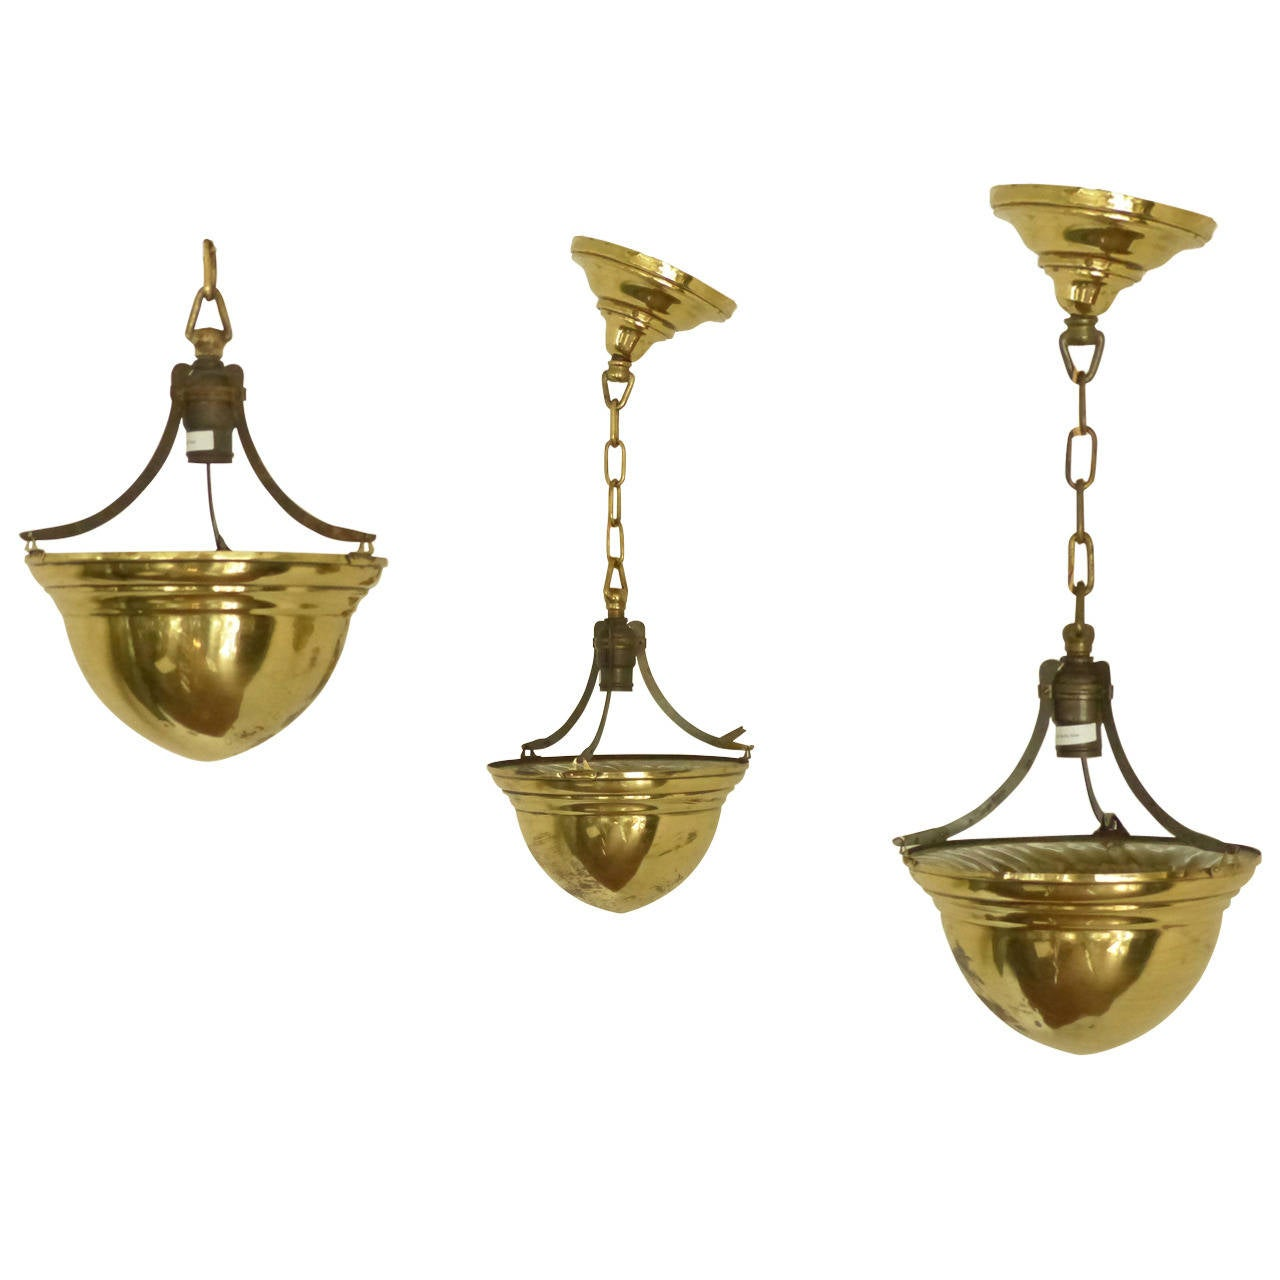 Lighting Fixtures Sale: 1920 Brass Cone Ceiling Light Fixtures For Sale At 1stdibs